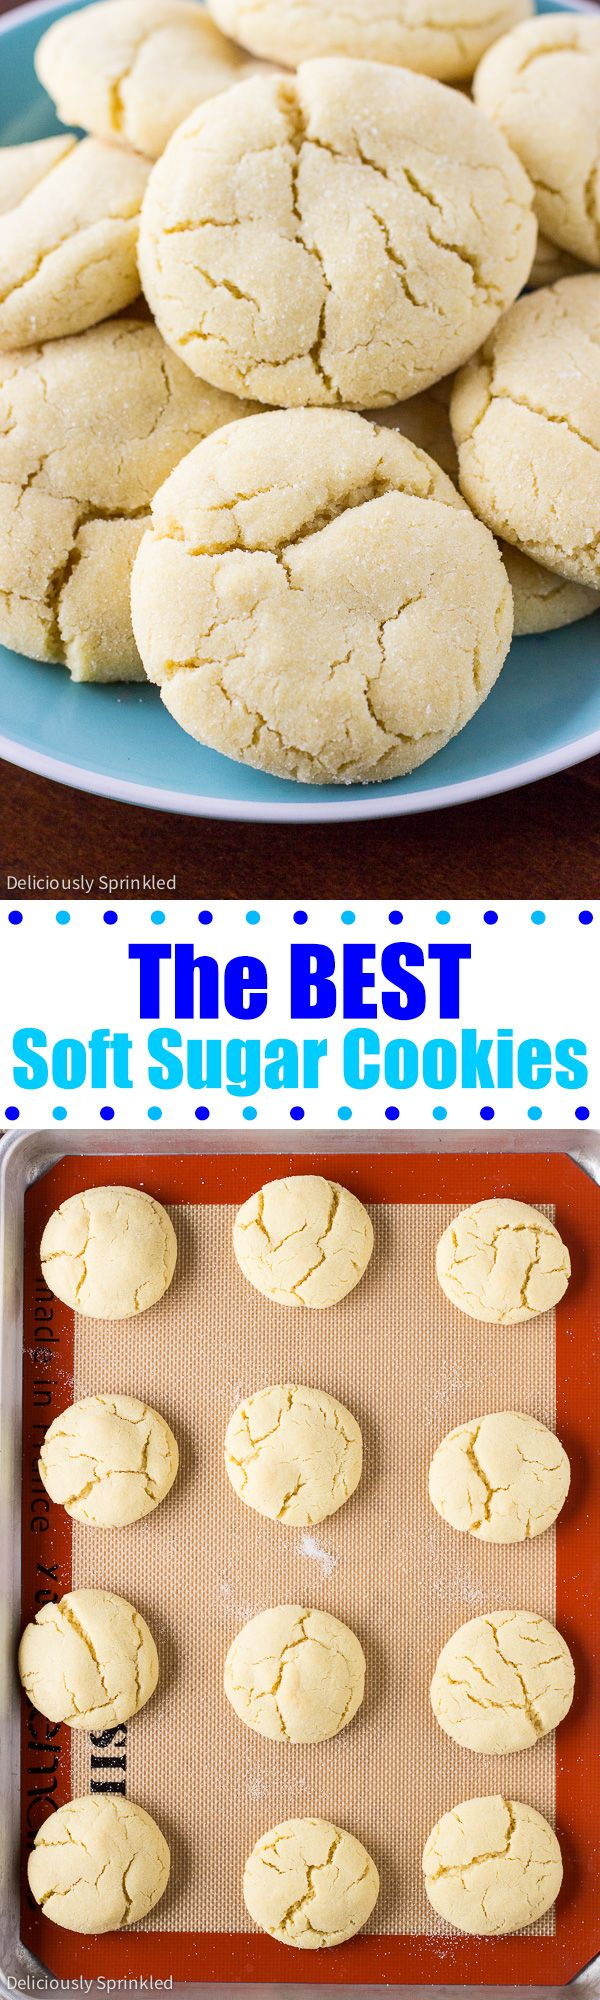 The BEST Soft Sugar Cookies EVER! And they are SO easy to make! These are a family favorite!